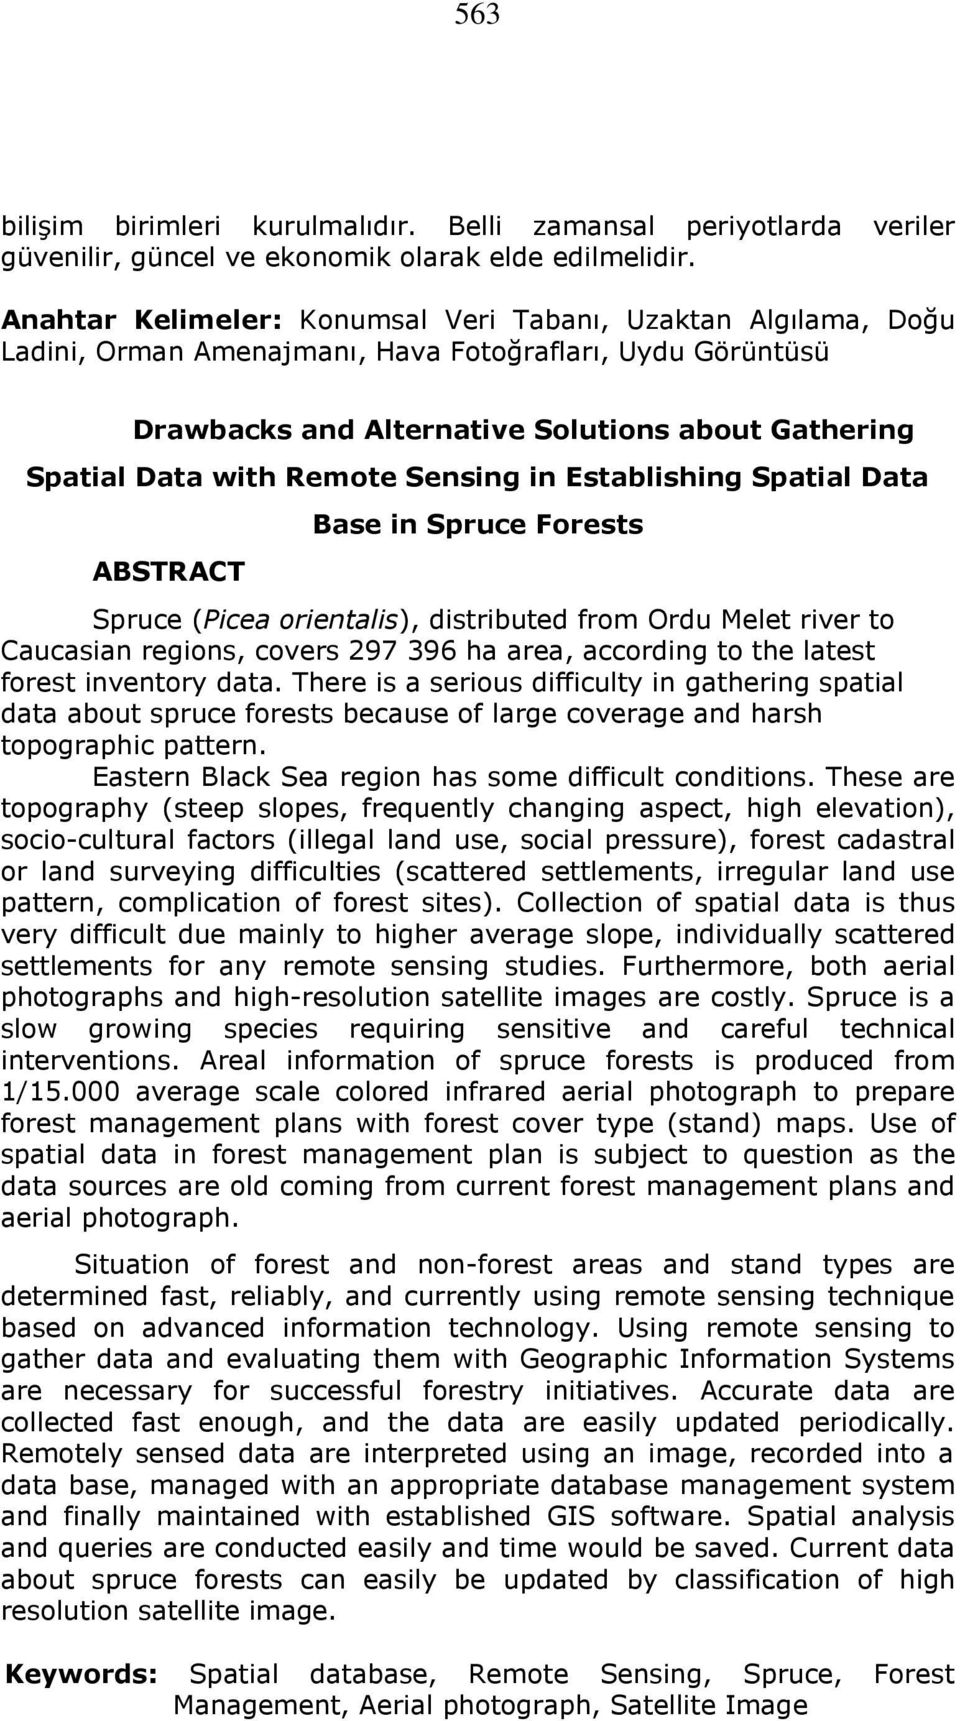 Remote Sensing in Establishing Spatial Data ABSTRACT Base in Spruce Forests Spruce (Picea orientalis), distributed from Ordu Melet river to Caucasian regions, covers 297 396 ha area, according to the